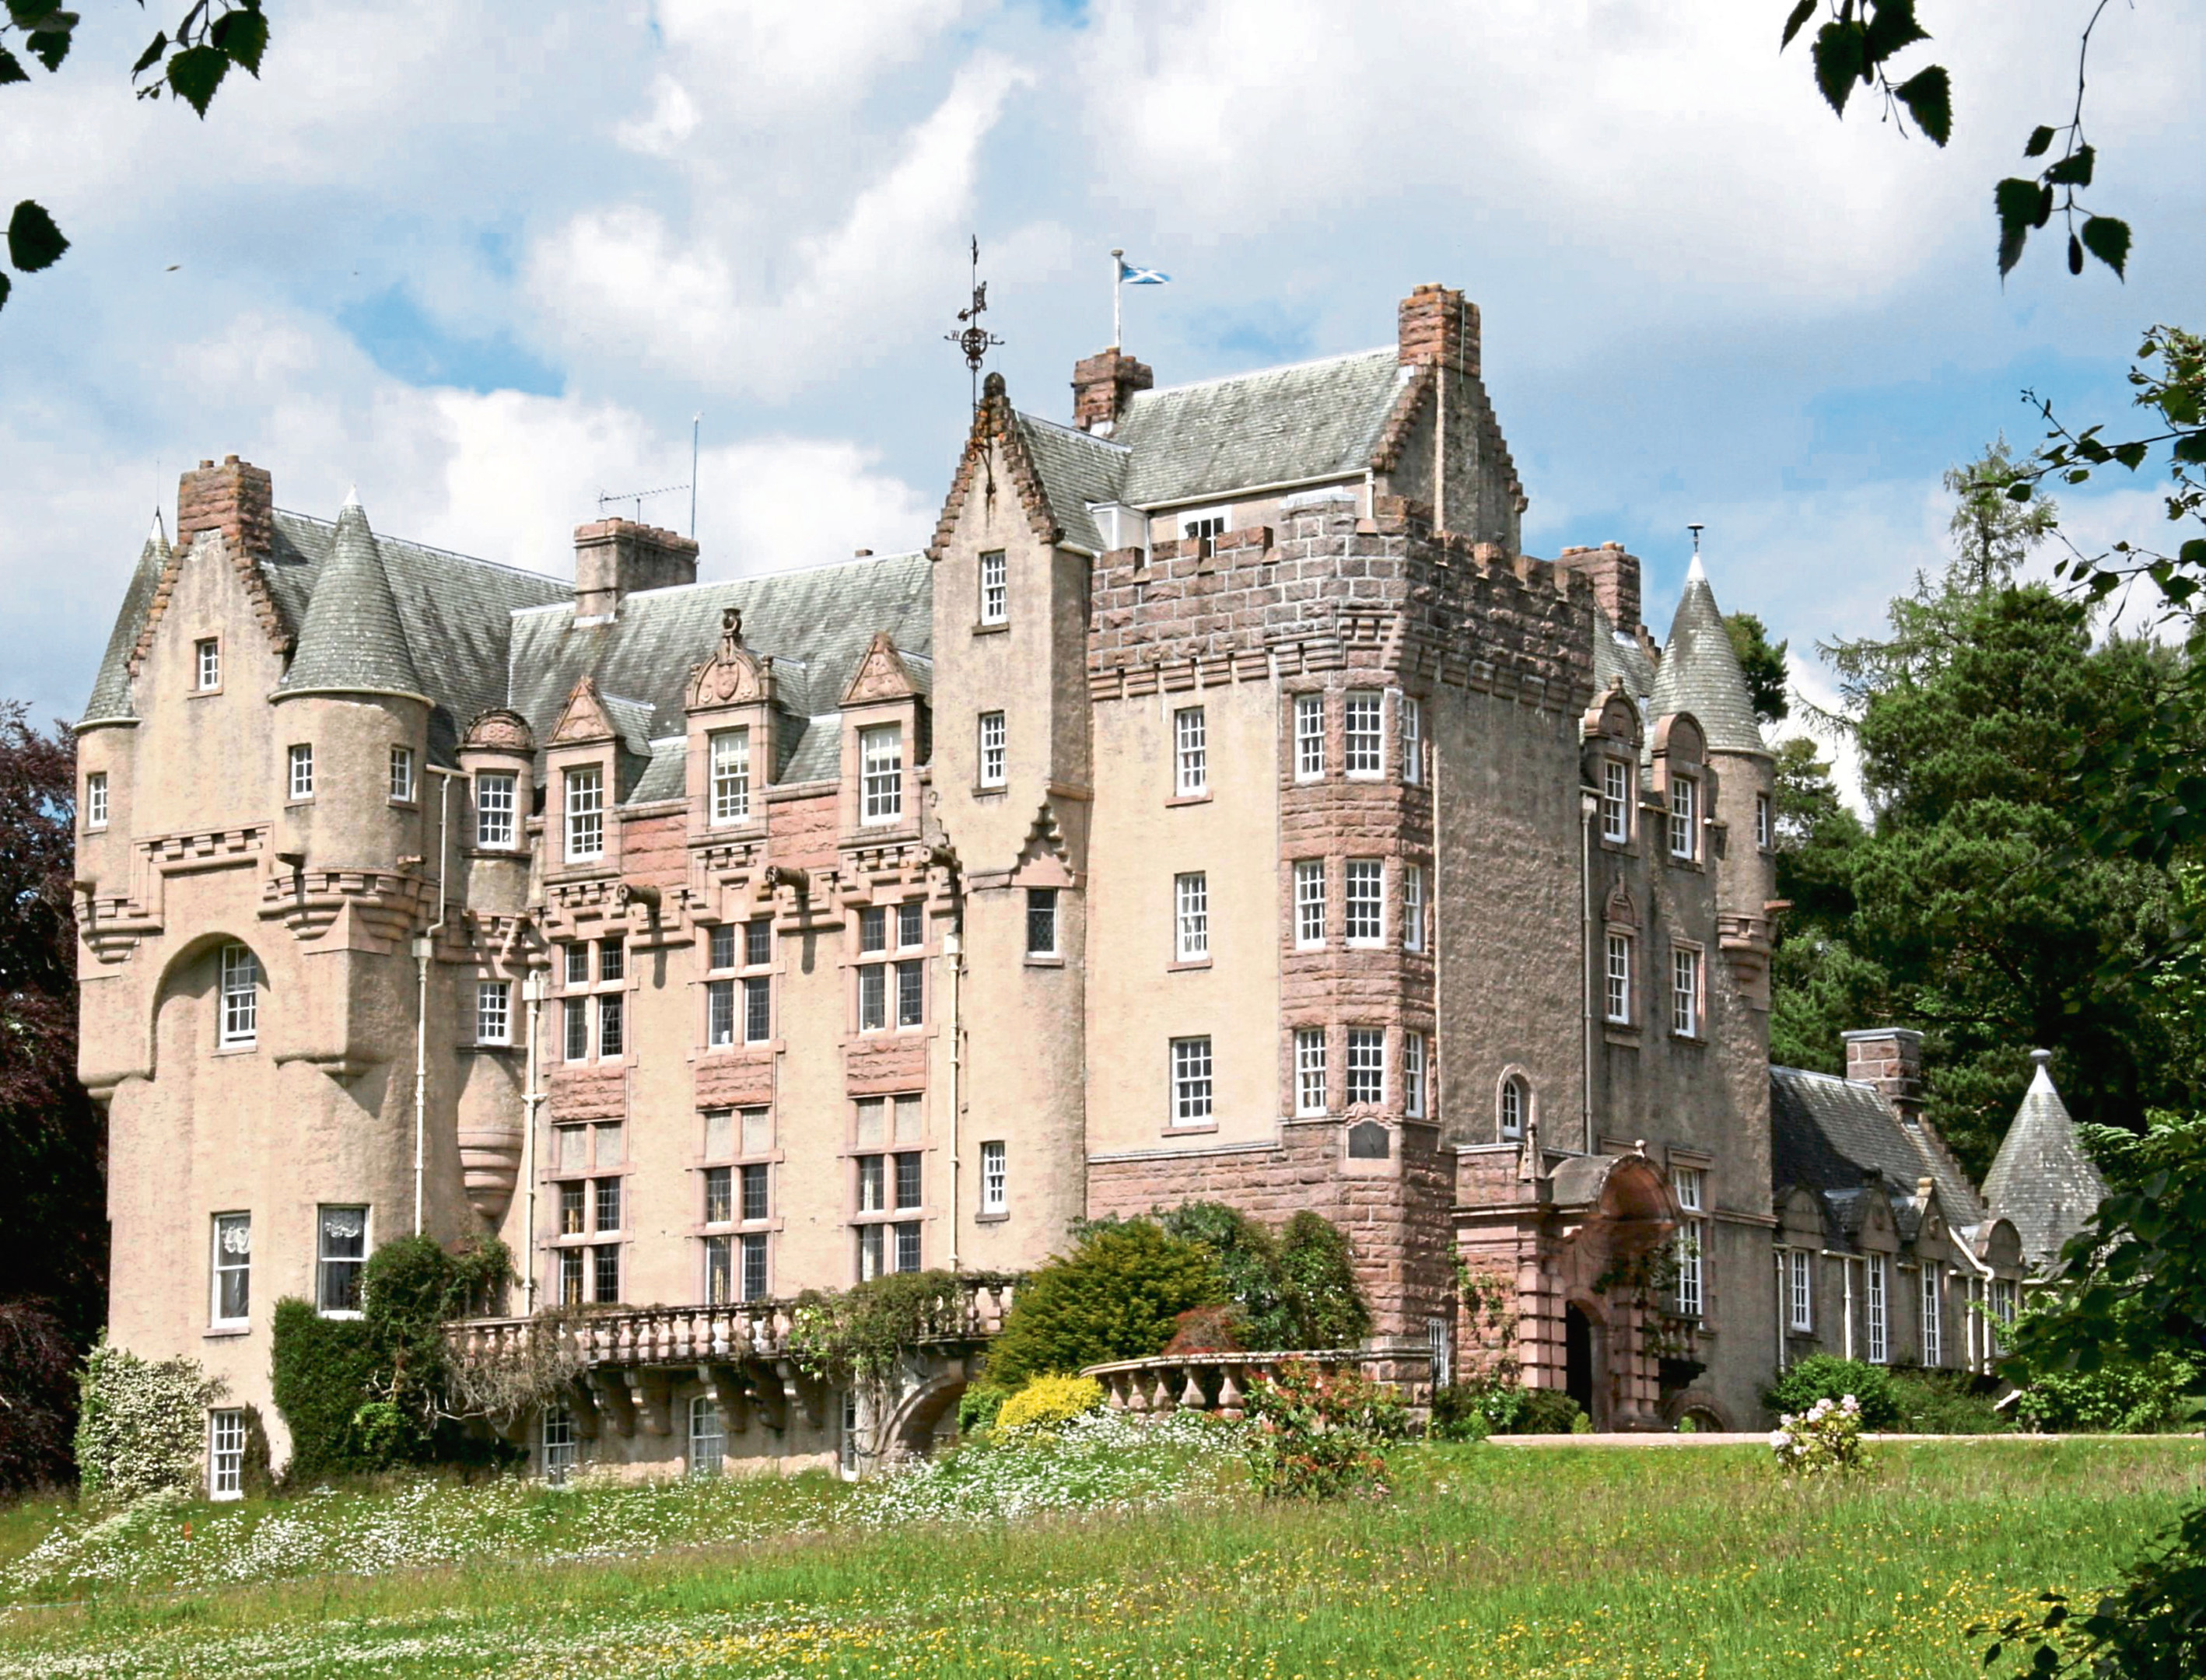 The performance will be held at Kincardine Castle